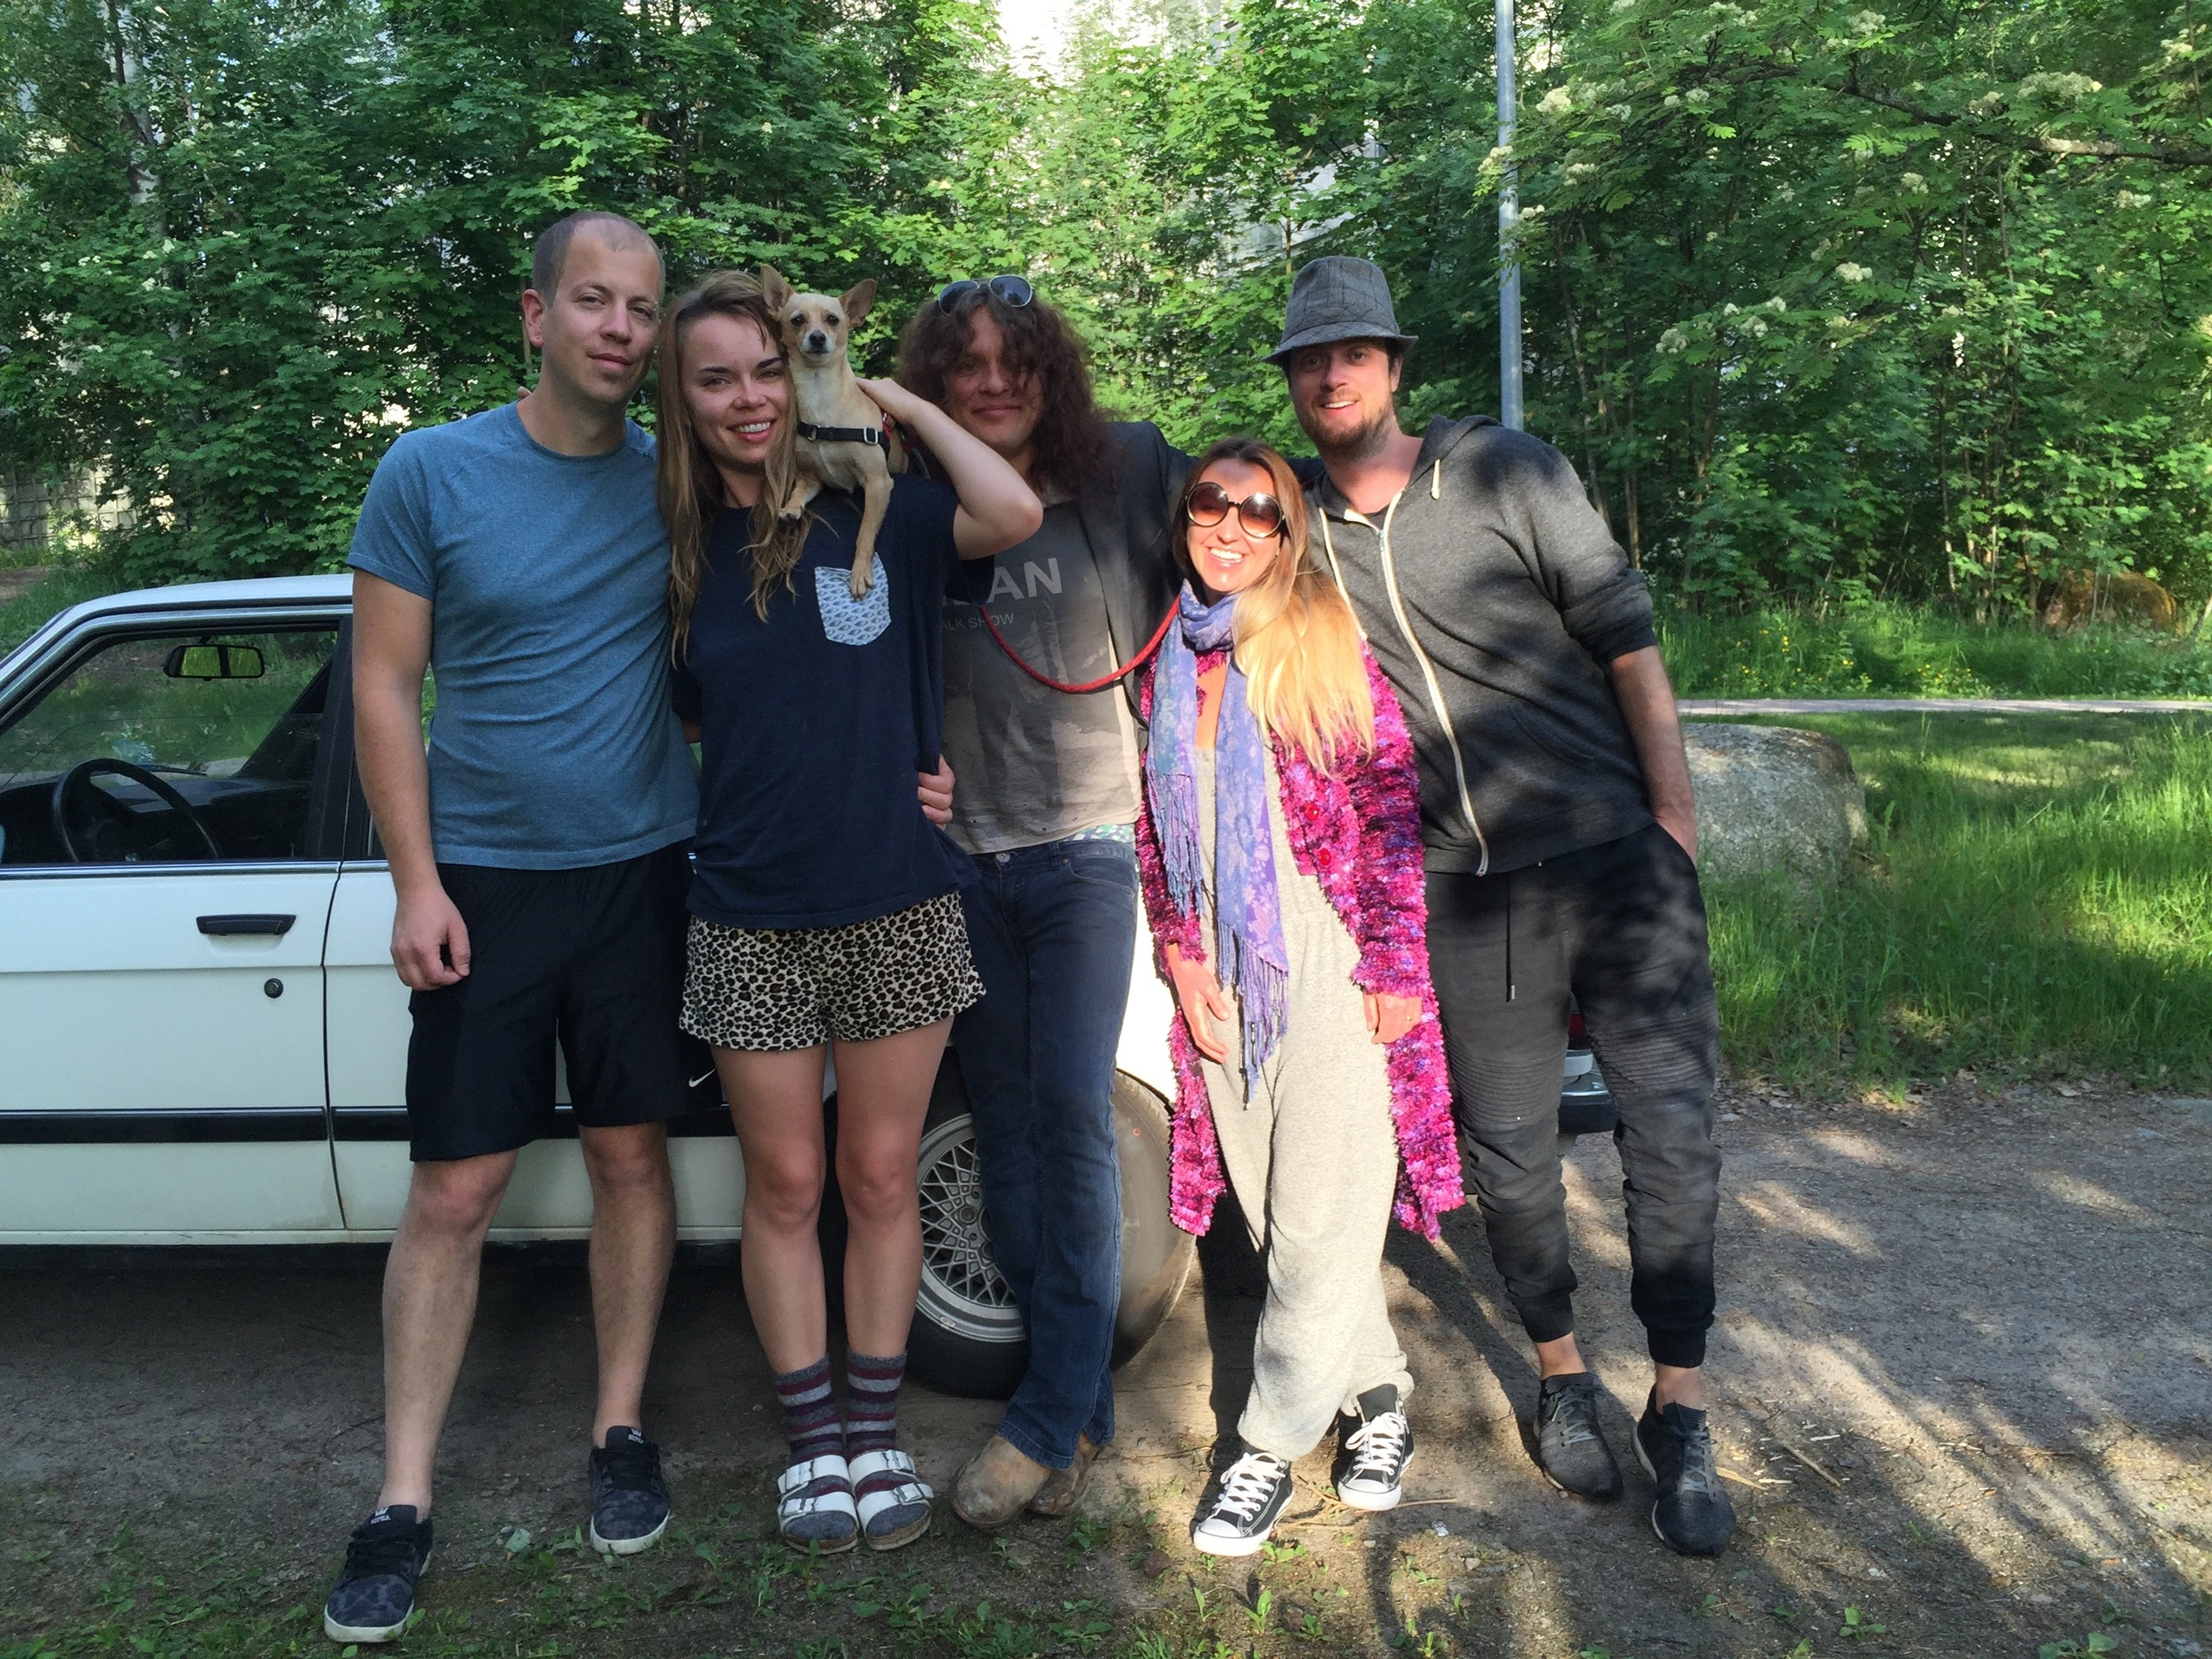 The tipsy gypsies saying goodbye to their Swedish Friends at 5am. Thank you Alex, Nora and Teemu!